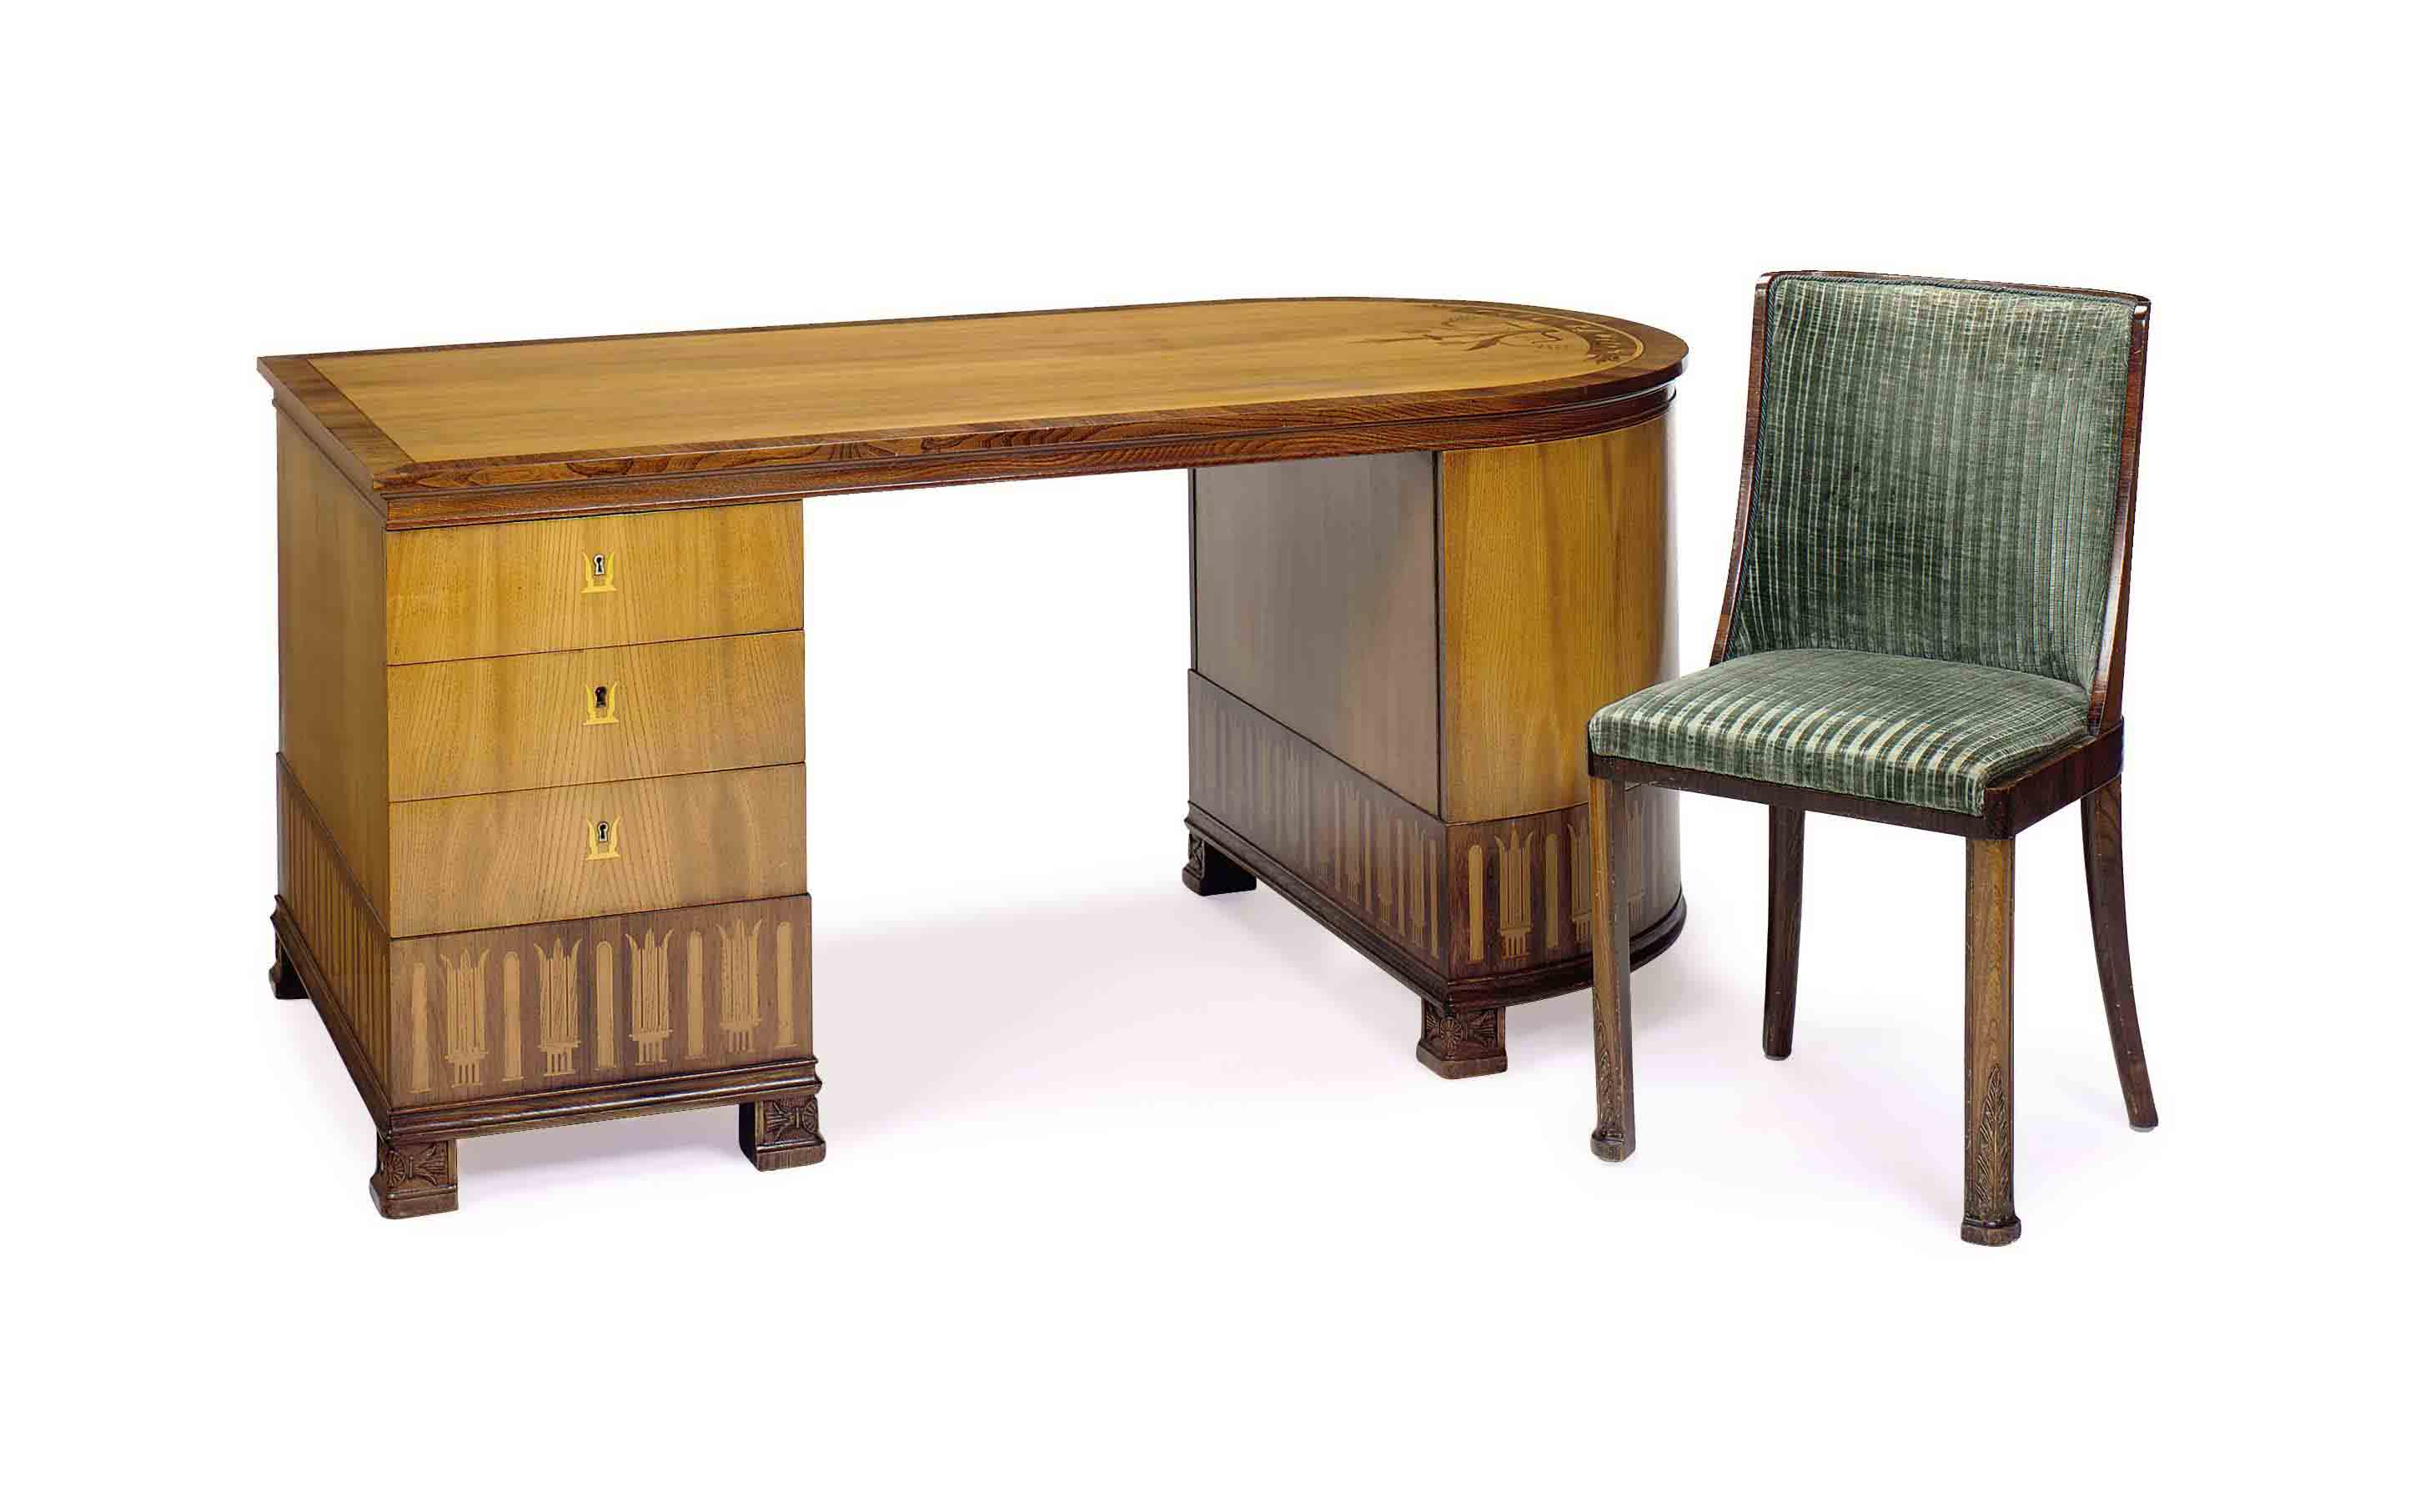 AN ART DECO FRUITWOOD AND WALN